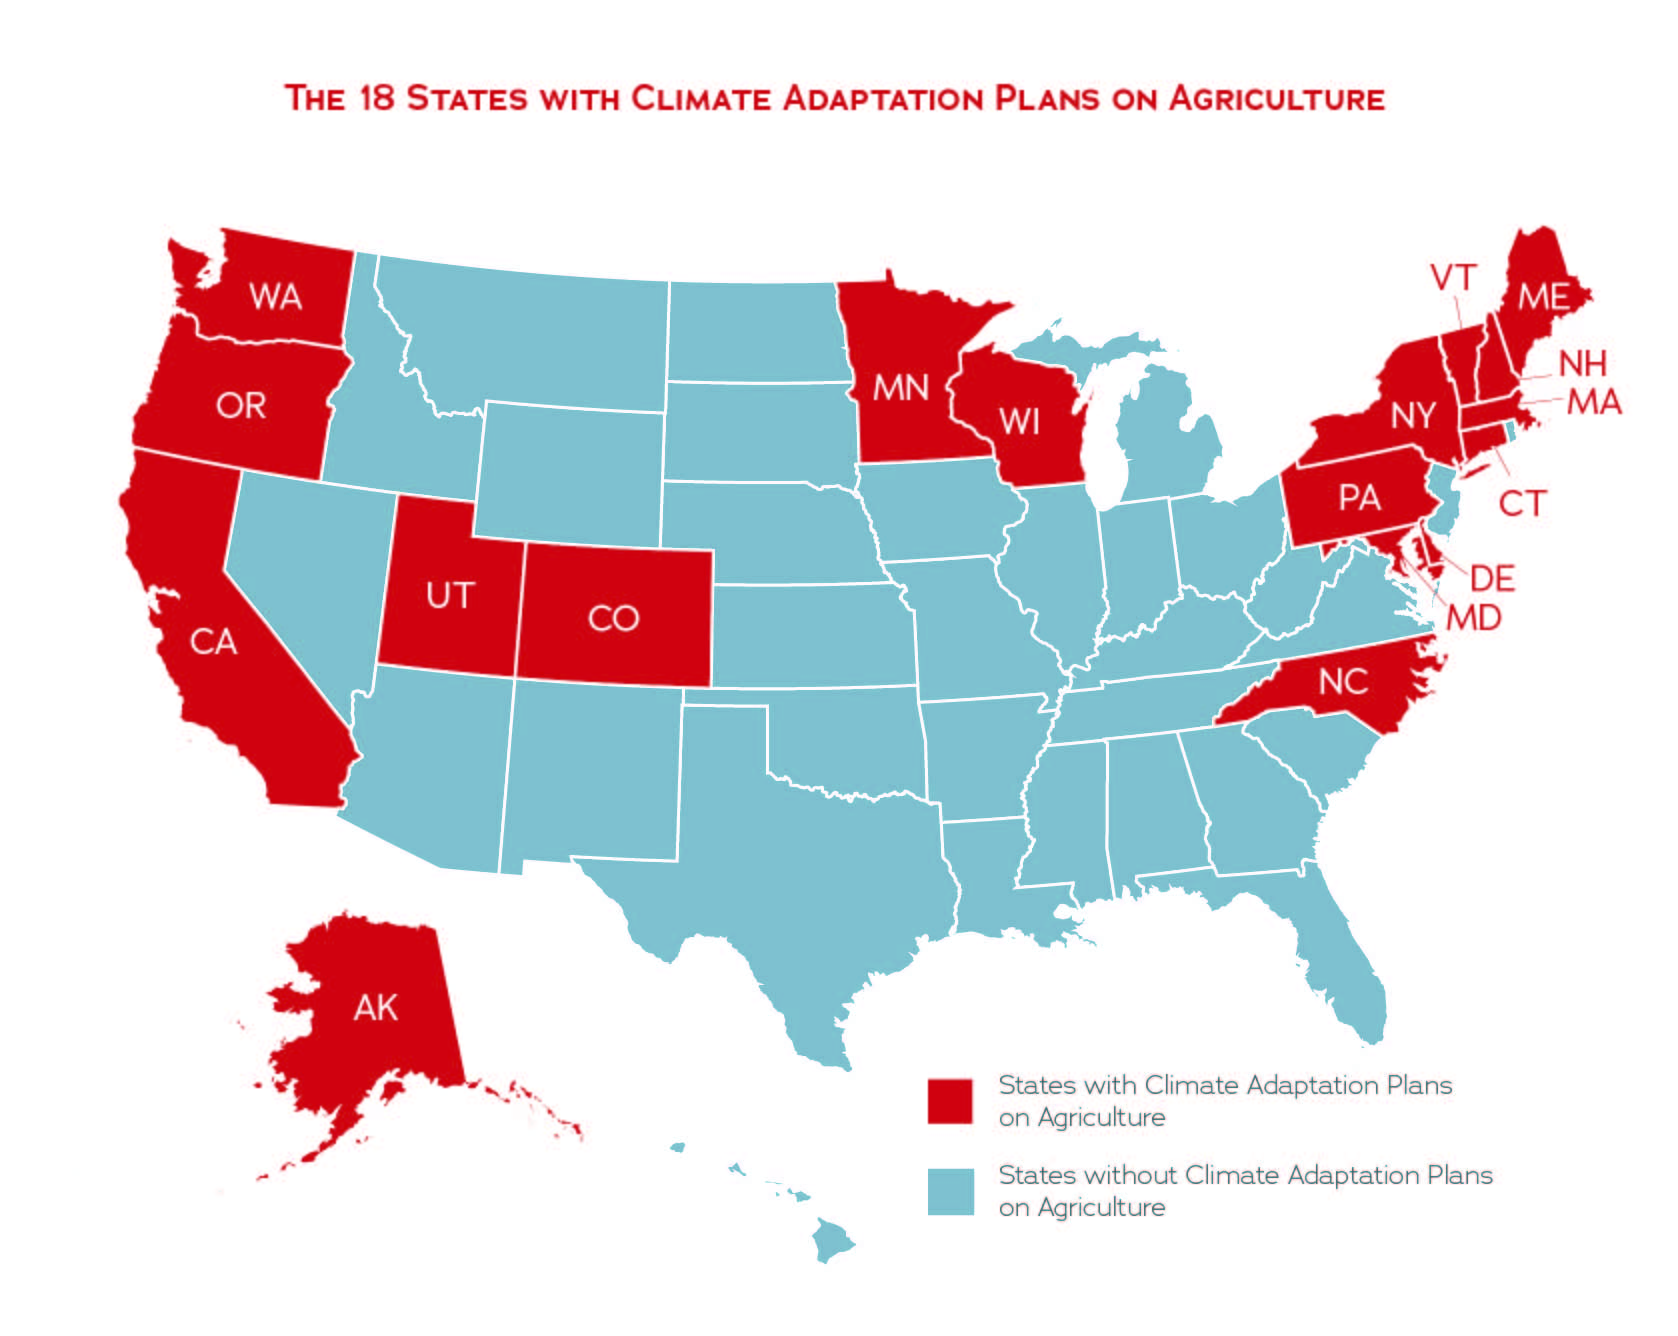 State Climate Adaptation Plans for Agriculture Map